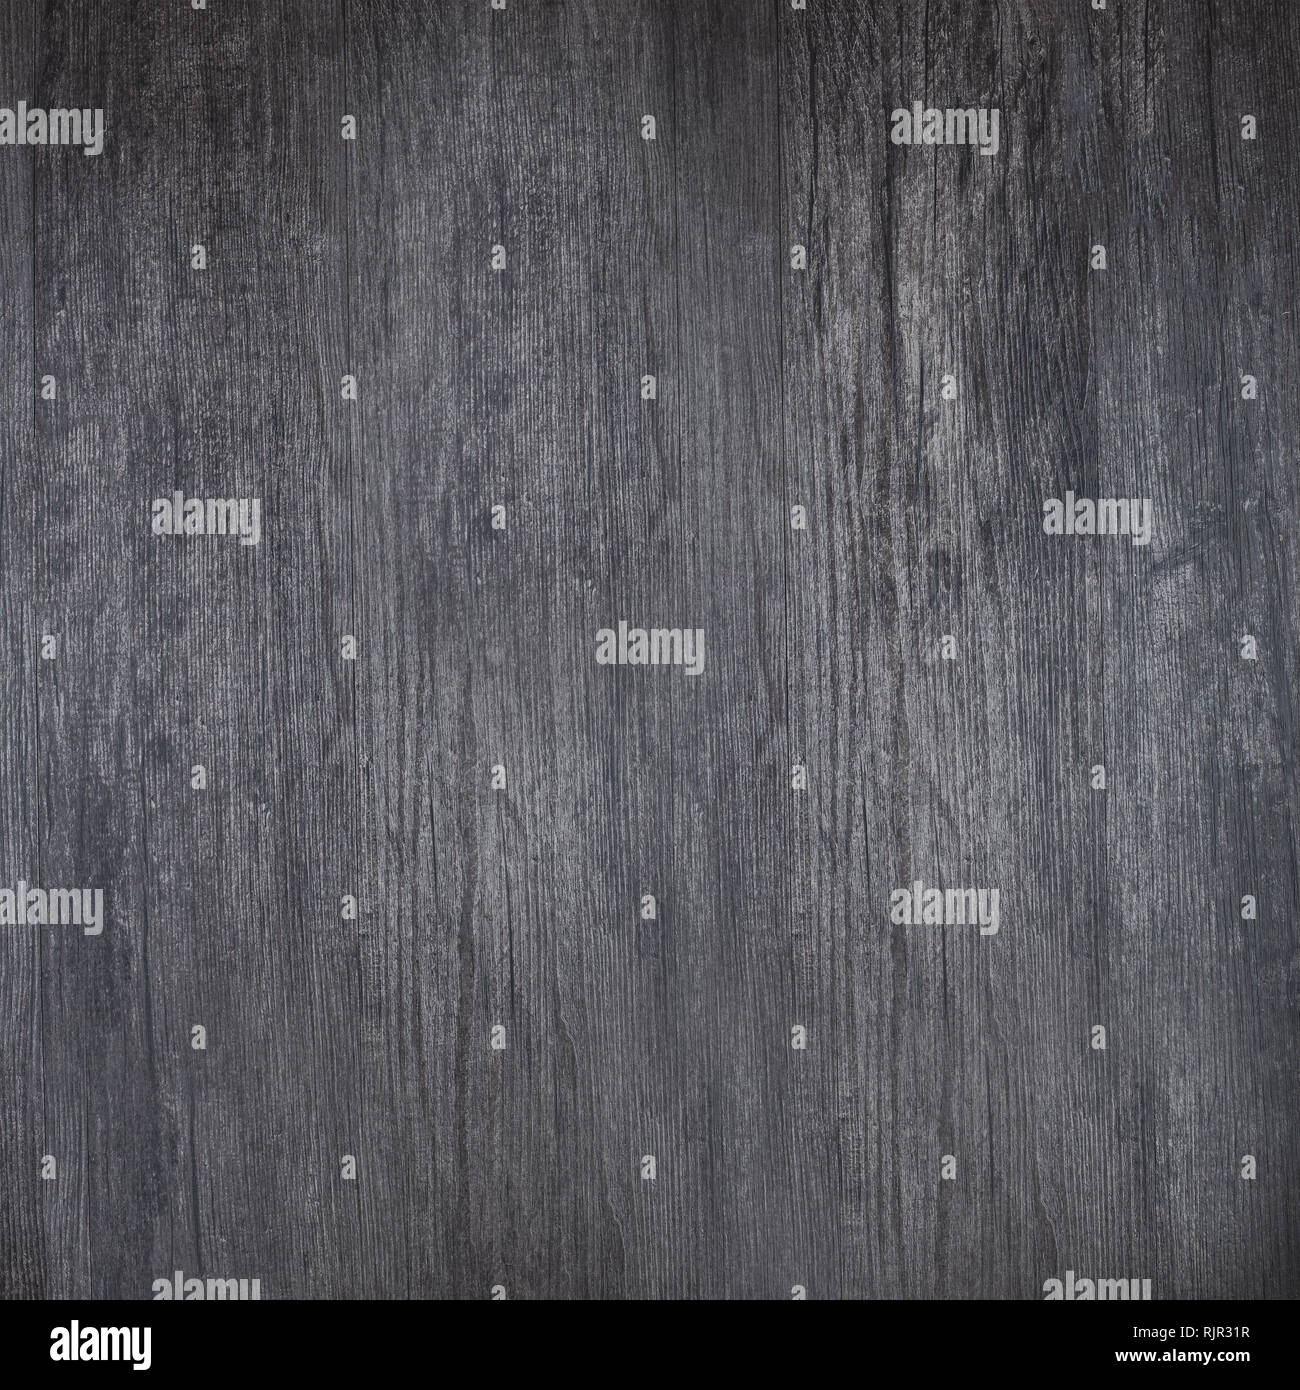 Wallpaper Imitation Wood With Dark Gray Background Wallpaper